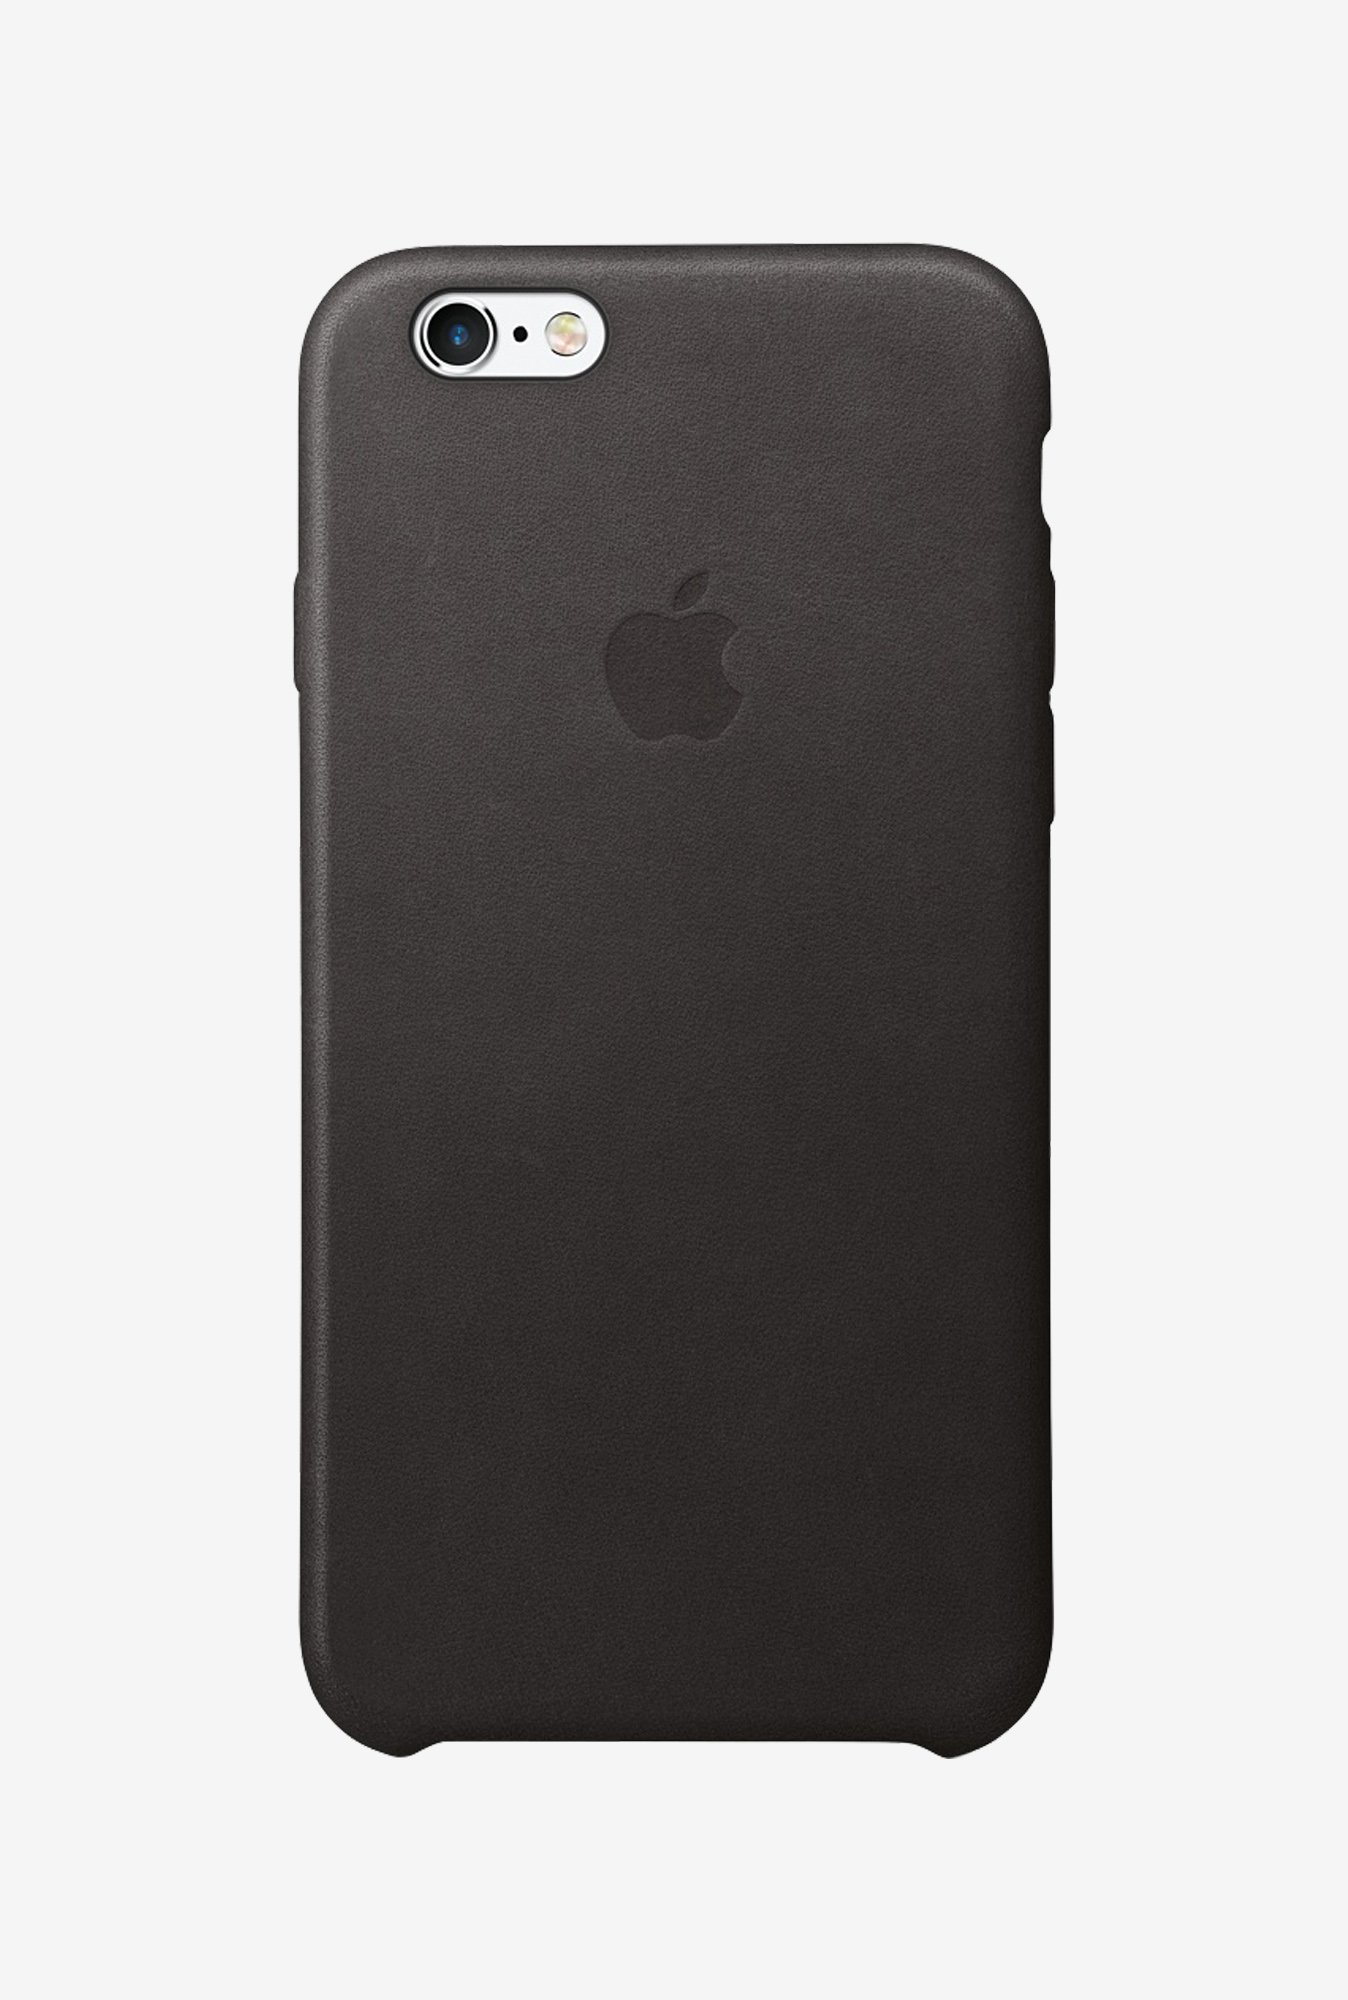 Apple iPhone 6S APL6SBLK Leather Case Black